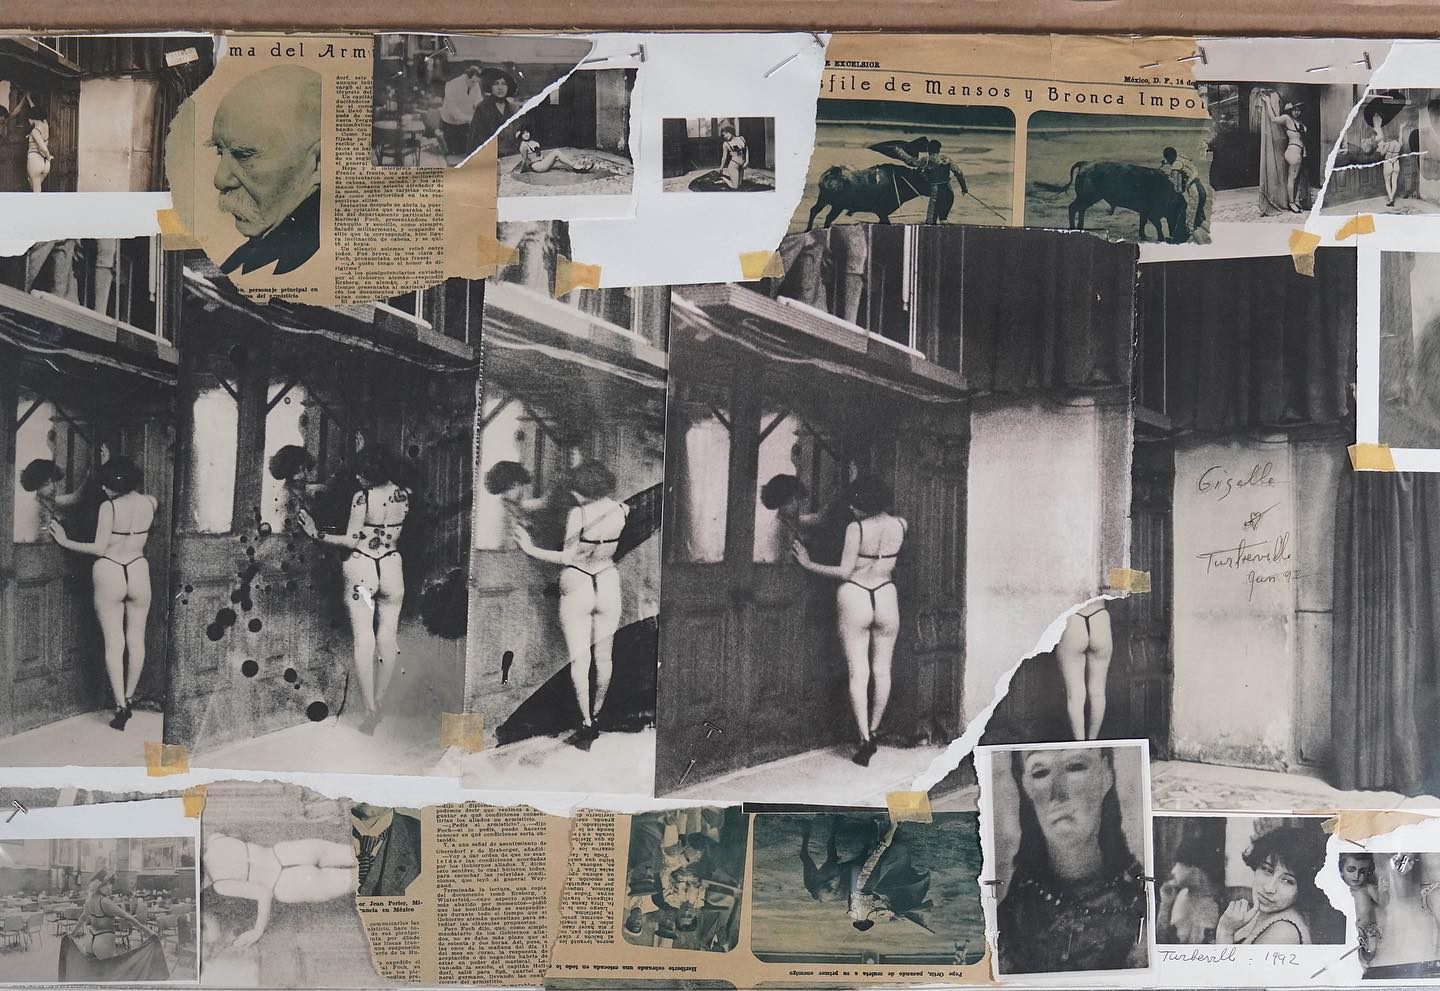 """Though known for her fashion photography, Deborah Turbeville also devoted herself to a complex body of personal work, often involving collages. These collages feature not only her fashion photos, but her more obscure photographs which often featured in her books.   For her collages, Turbeville visibly utilized everyday household binding agents like tape and pins. She also tended to create intentional rips and tears in these objects, and created backings using materials like newsprint, or even brown paper bags.   By combining her unearthly photographs with more commonplace materials in ways that emphasized the construction of each piece, Turbeville crafted totally unique, irreverent, and evocative art objects.  Seen here is a collage featuring materials from Mexico, where Turbeville owned a property she called """"Casa No Name"""". It features a model named Giselle, who Turbeville identified as """"a striptease dancer … in Cafe Tacuba in Mexico City"""". You can also see that she has signed the collage in two places, dating it at """"Jan 92"""".  Check out today's story for a closer look at this collage!  © Deborah Turbeville/MUUS Collection"""